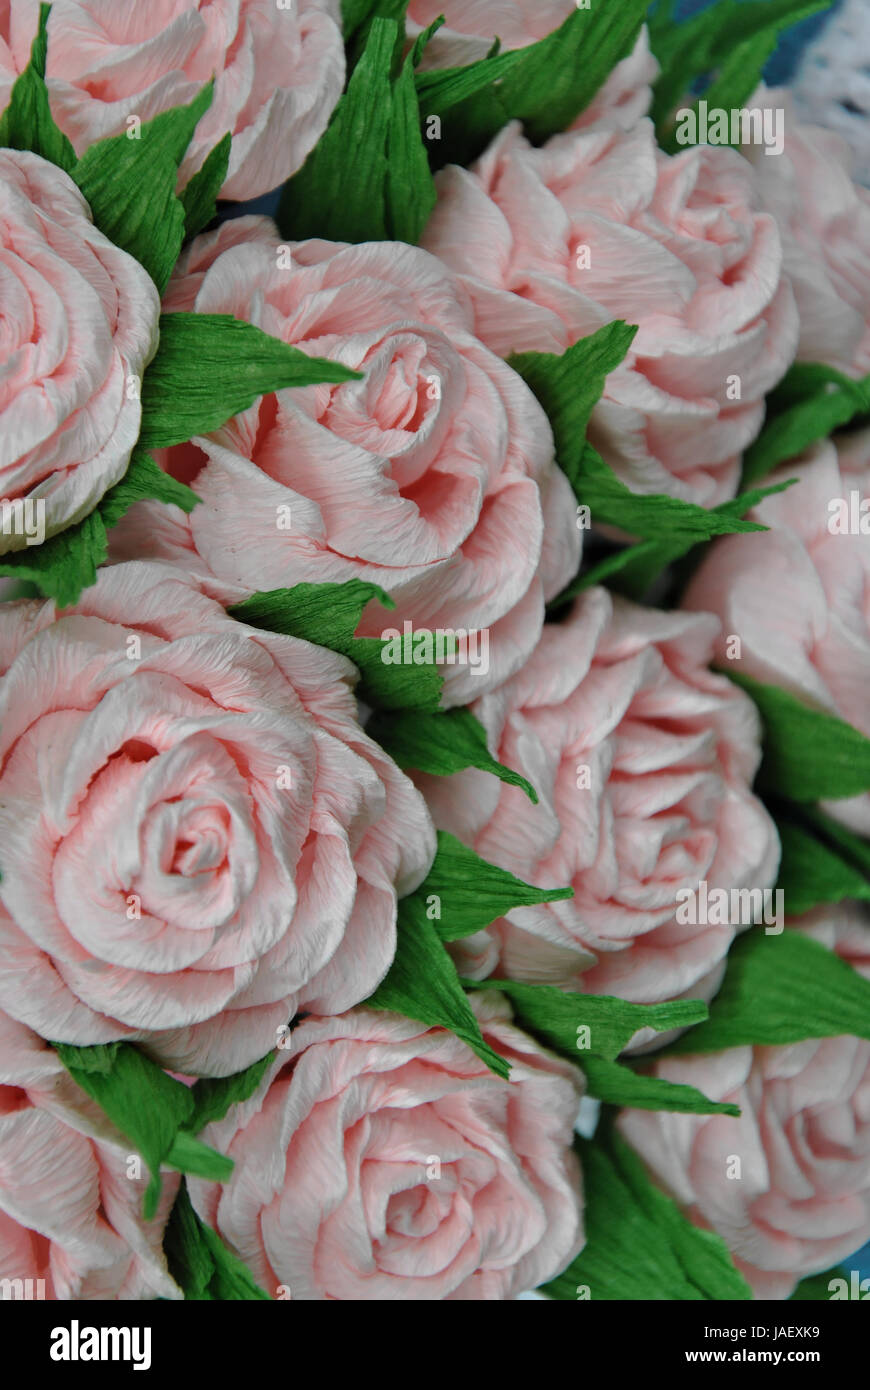 A close up photograph of handmade tissue paper rose bouquet stock a close up photograph of handmade tissue paper rose bouquet mightylinksfo